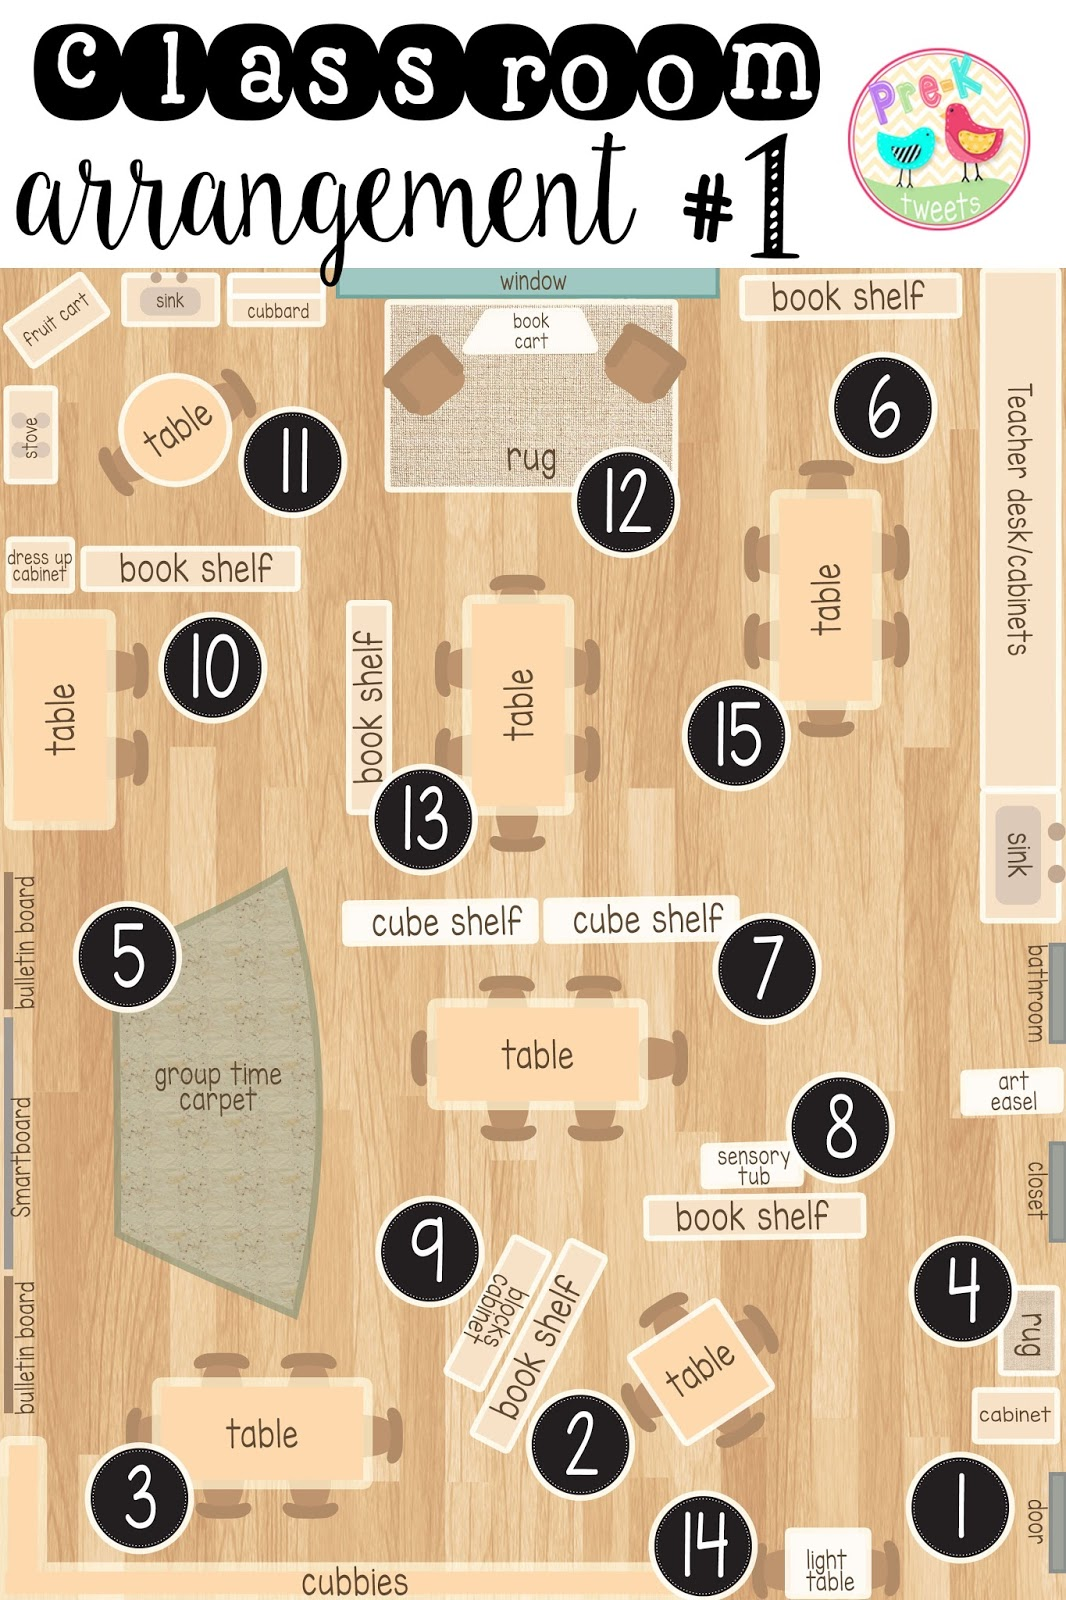 hight resolution of where should you put your book shelves your group time carpet your storage